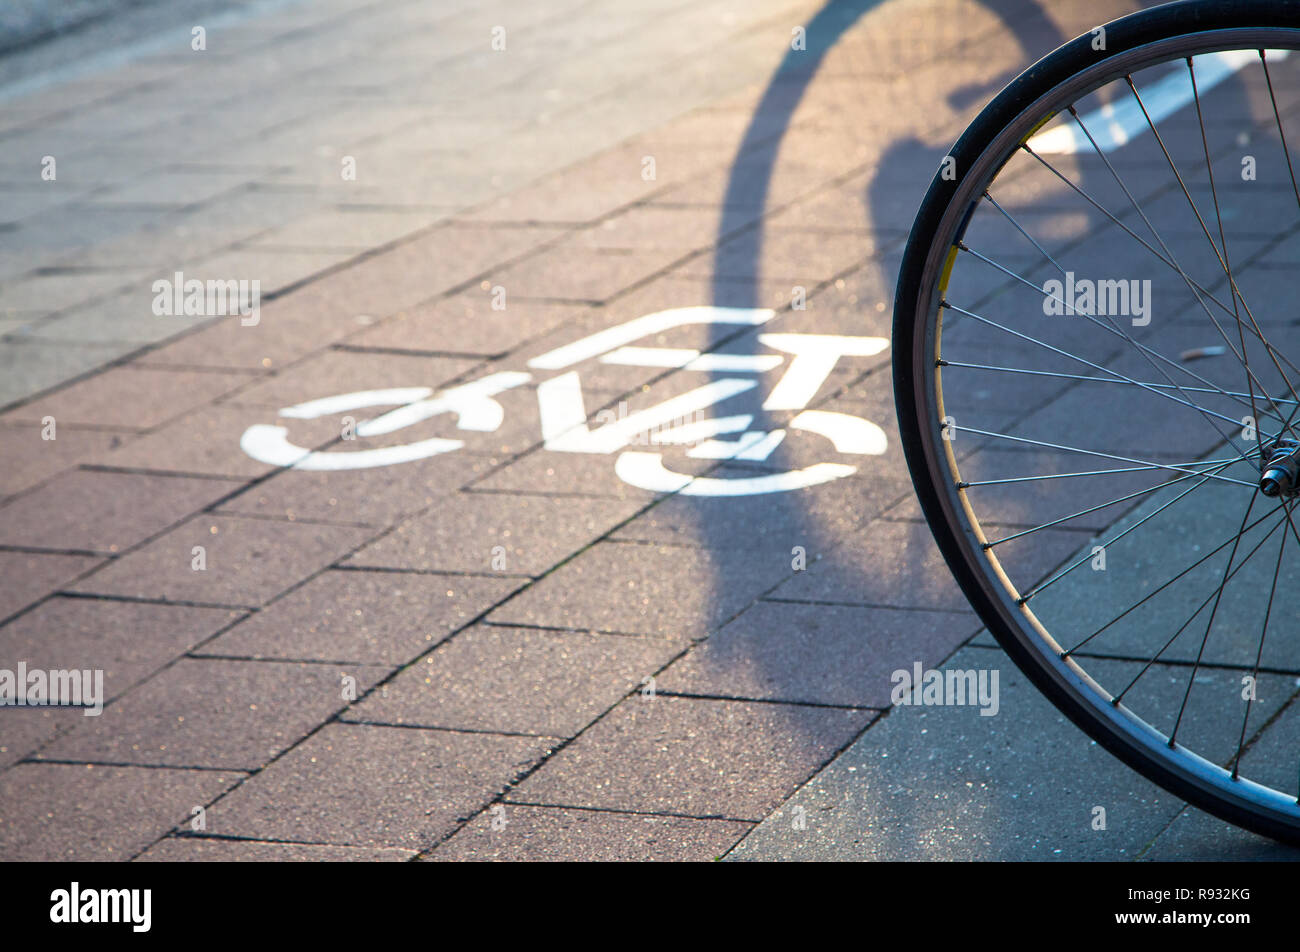 cycle lane with pictogram - Stock Image